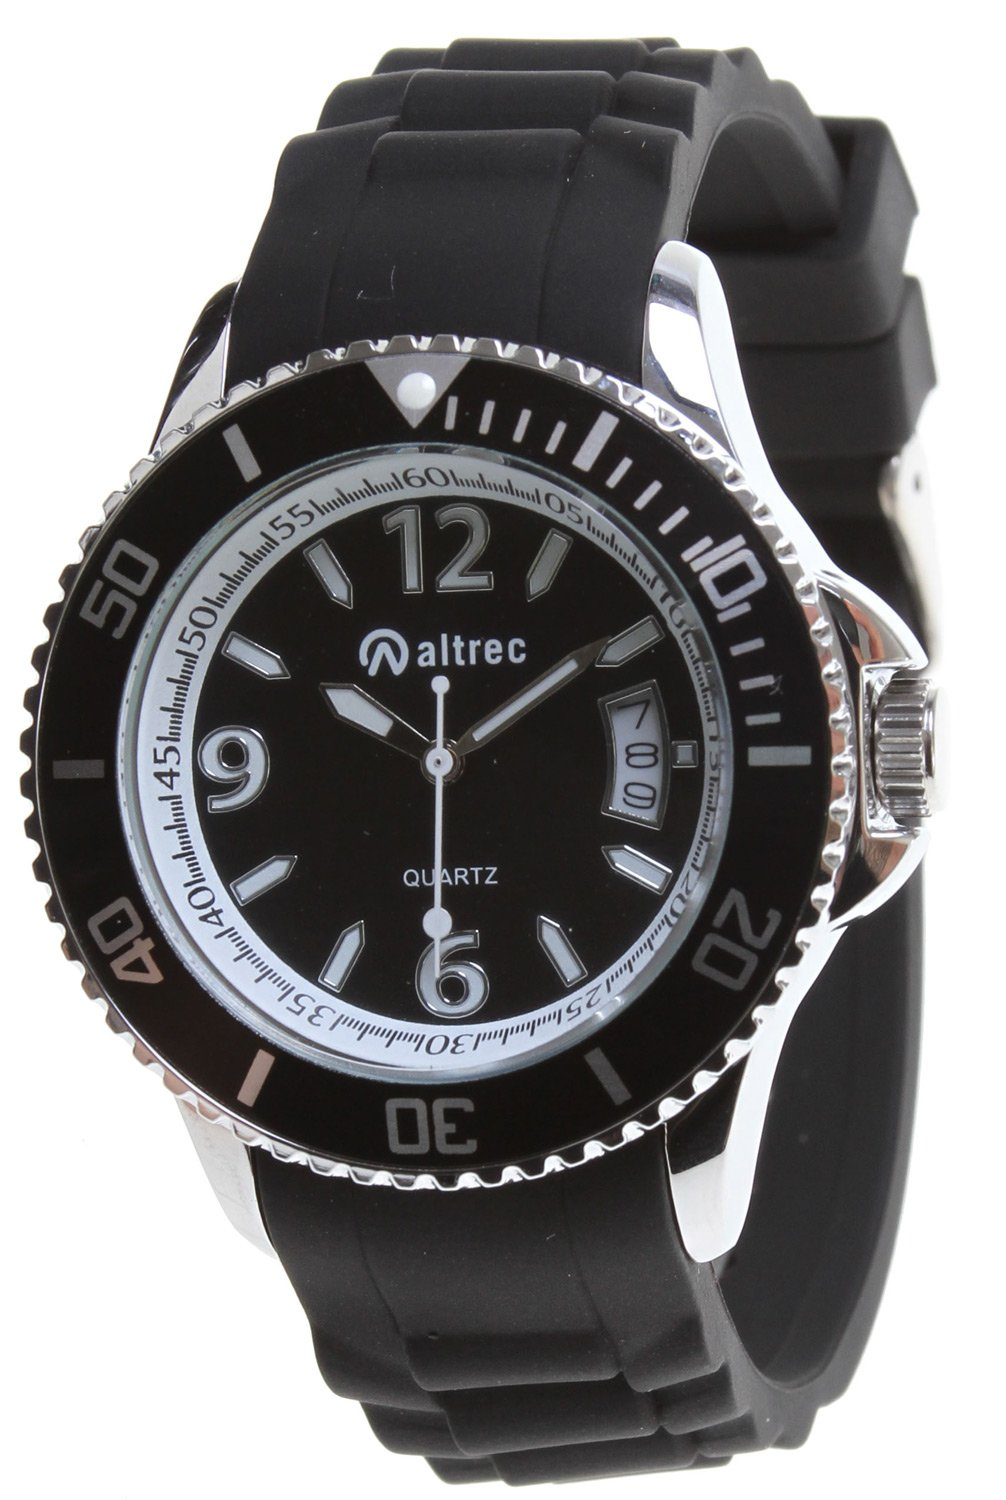 Altrec The Cliff Youth Watch Black/Black Youth